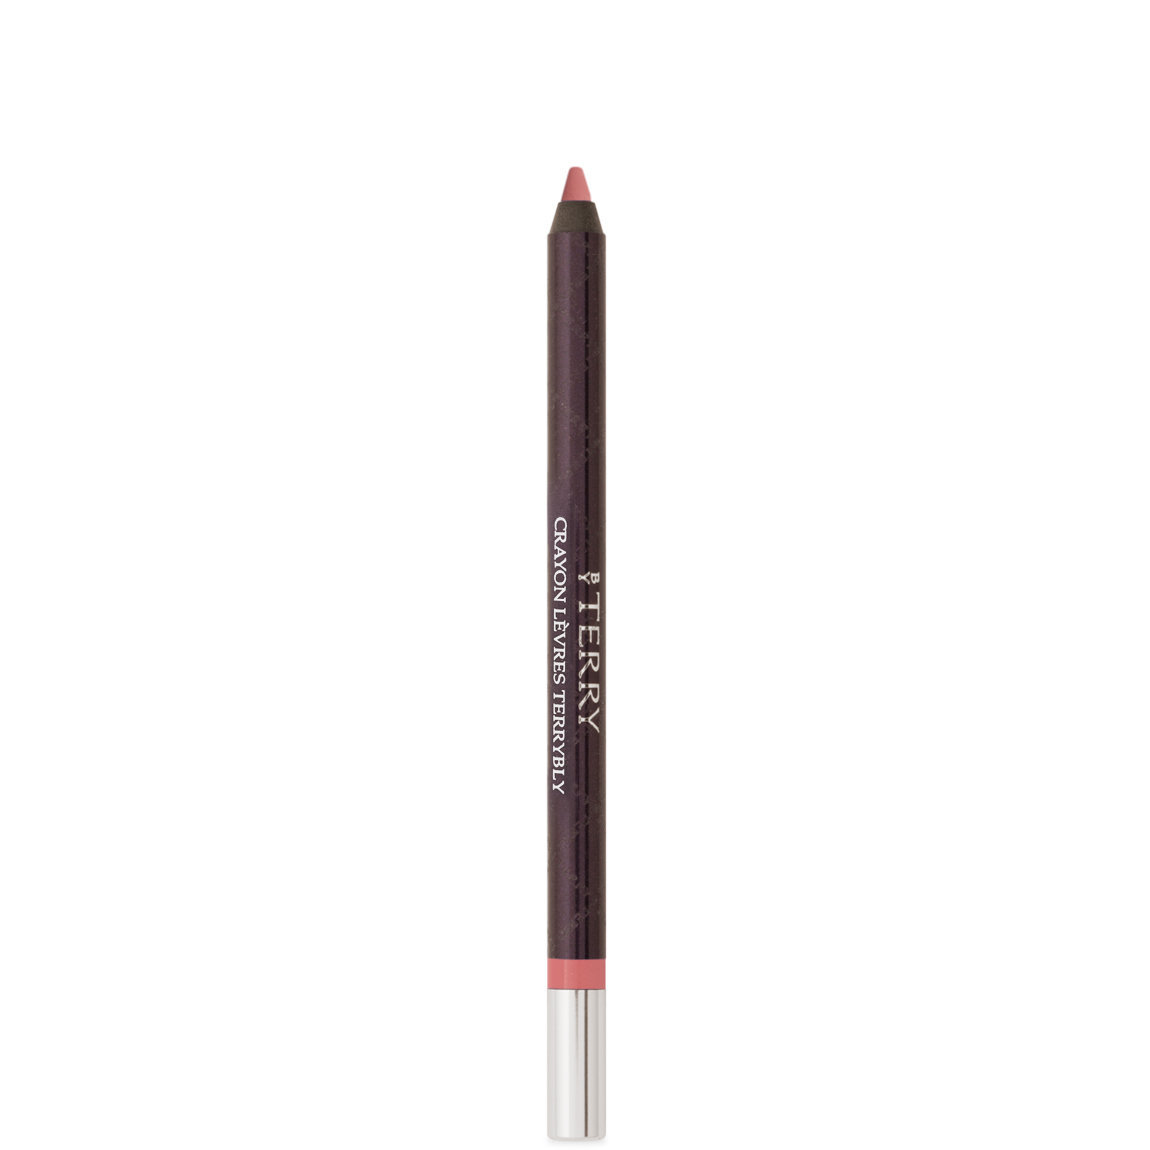 BY TERRY Crayon Lèvres Terrybly Perfect Lip Liner 5 Baby Bare alternative view 1.